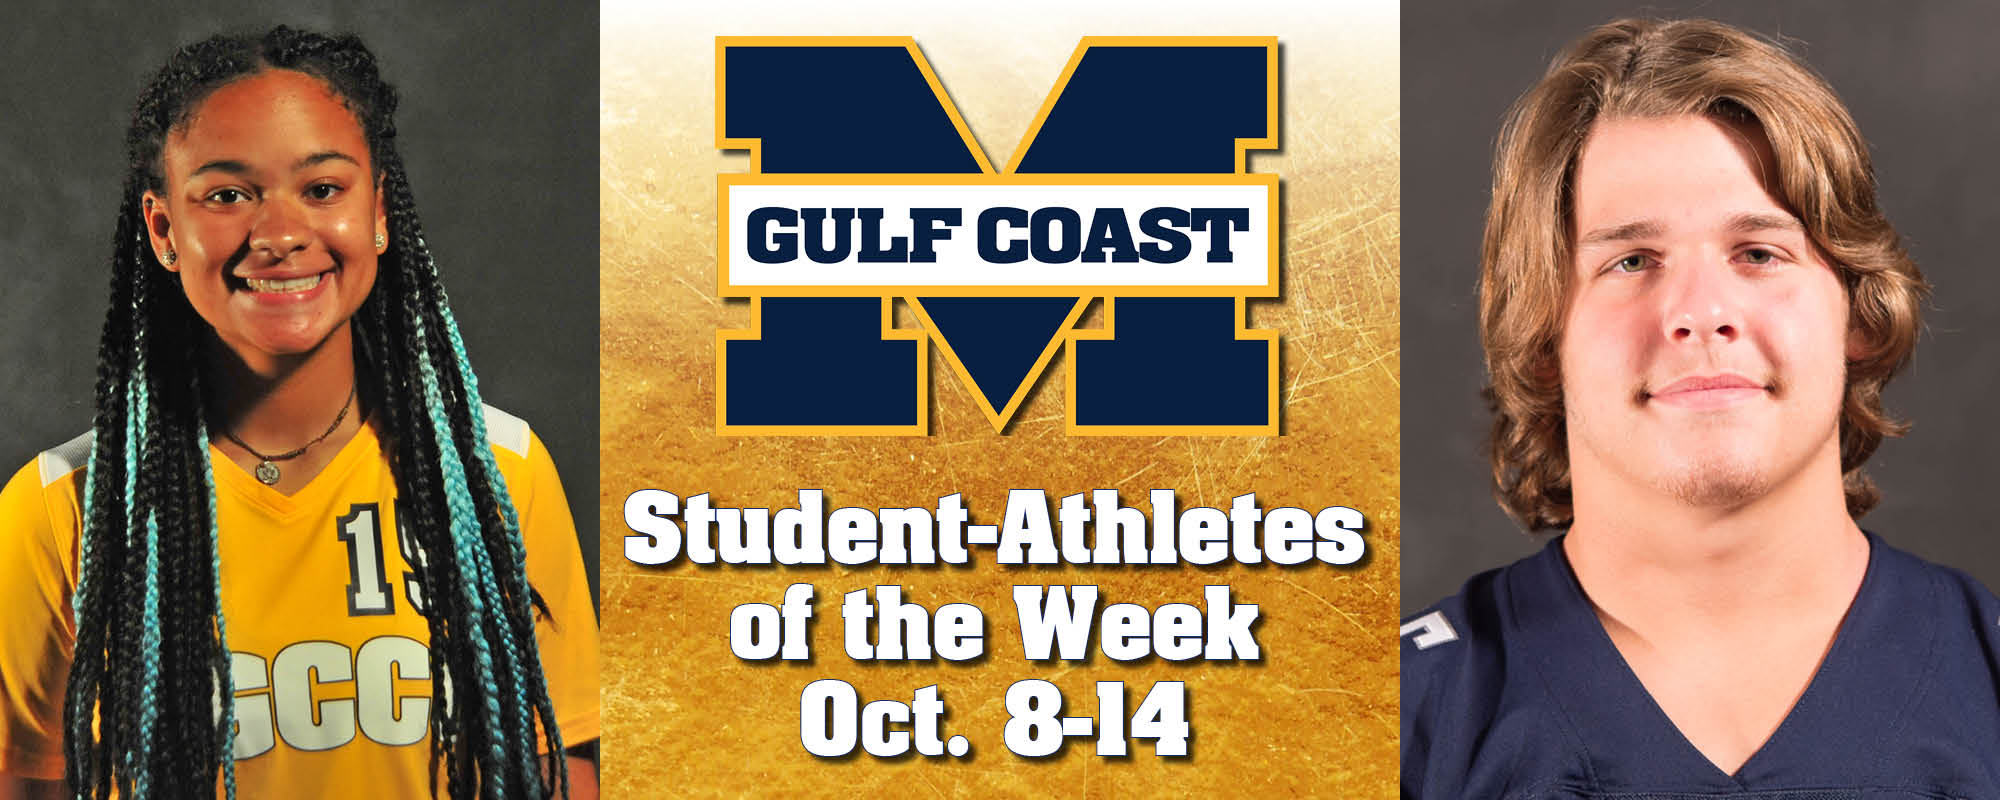 Beatty, Lovertich named MGCCC Student-Athletes of the Week